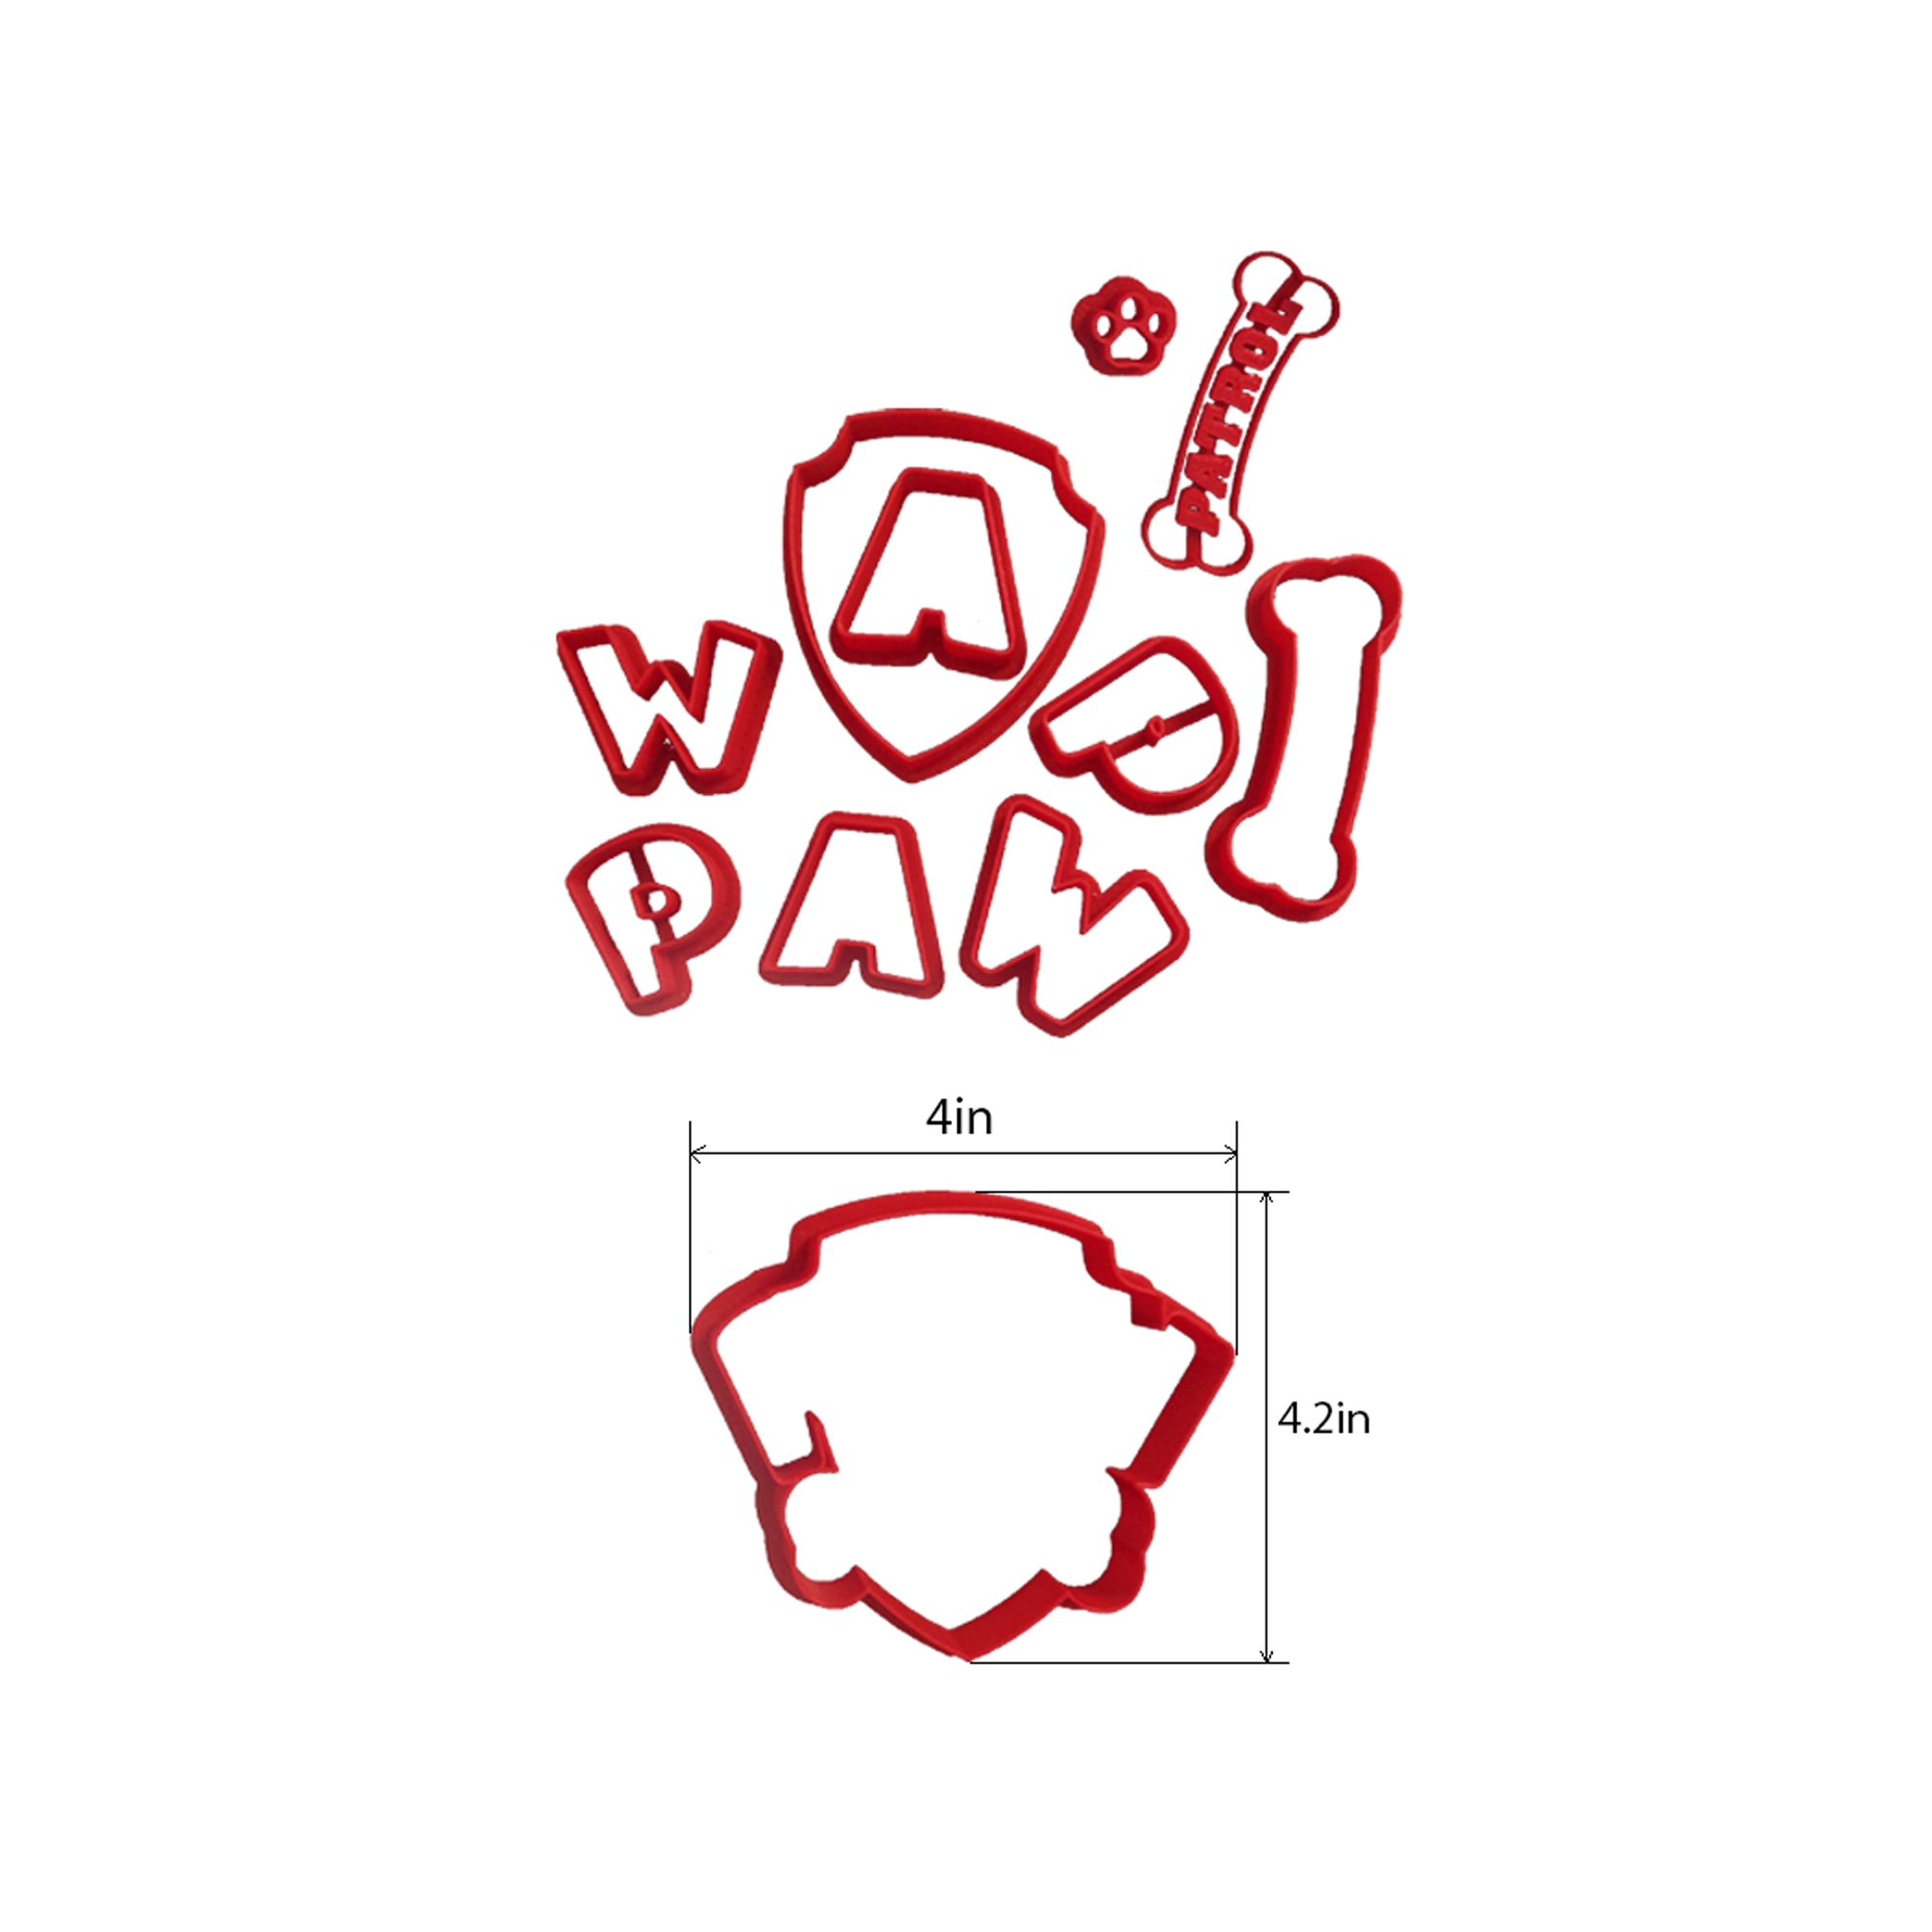 Paw Patrol Logo Cookie Cutter Set, choose 2, 3, 4, 5.5 inches. This cutter is a lot easier to use than trying to cut the logo out by hand. Absolutely (4 inch)